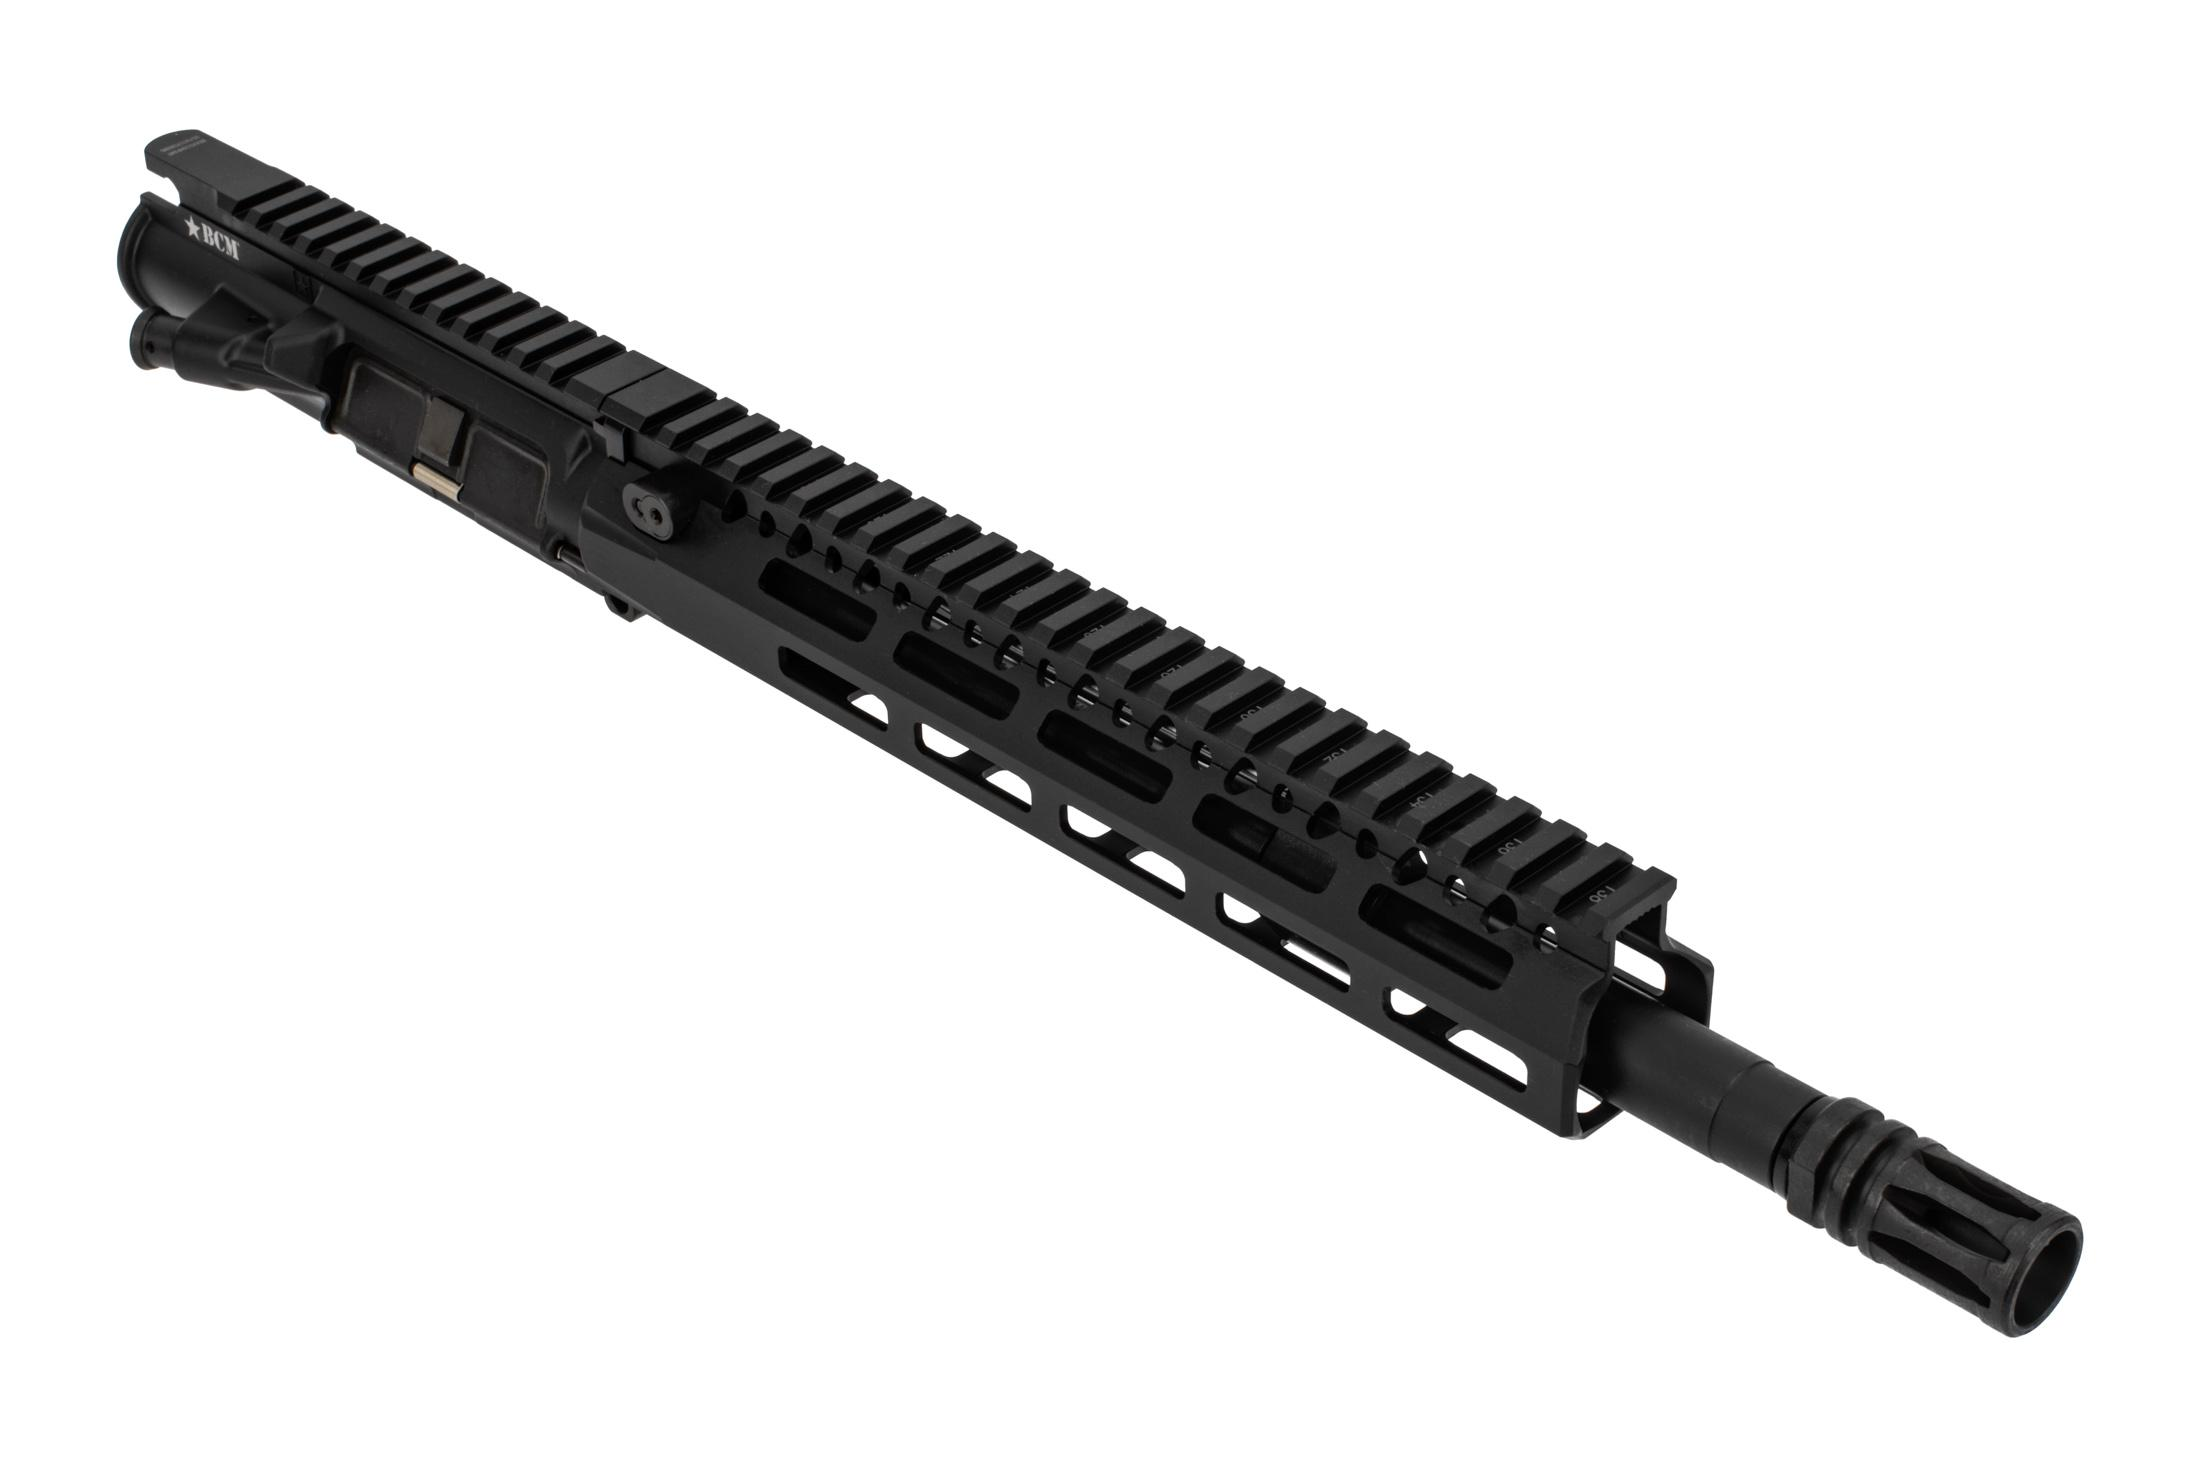 Bravo Company Manufacturing MK2 AR15 Barreled Upper Receiver features a 12.5 inch barrel and MCMR rail